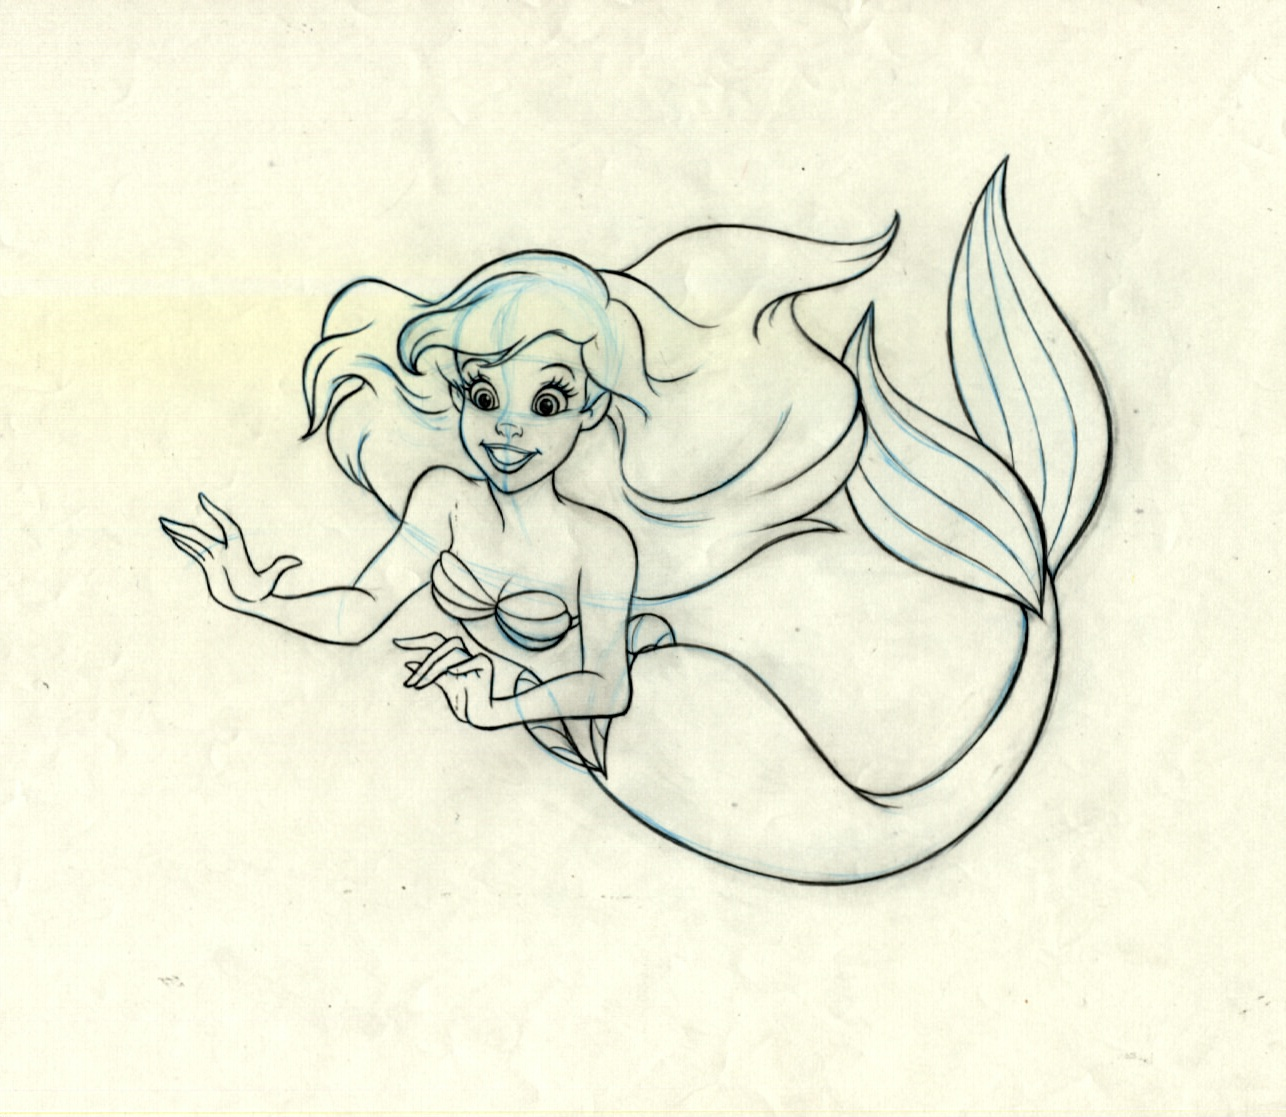 Ariel The Little Mermaid Original Production Drawing ...